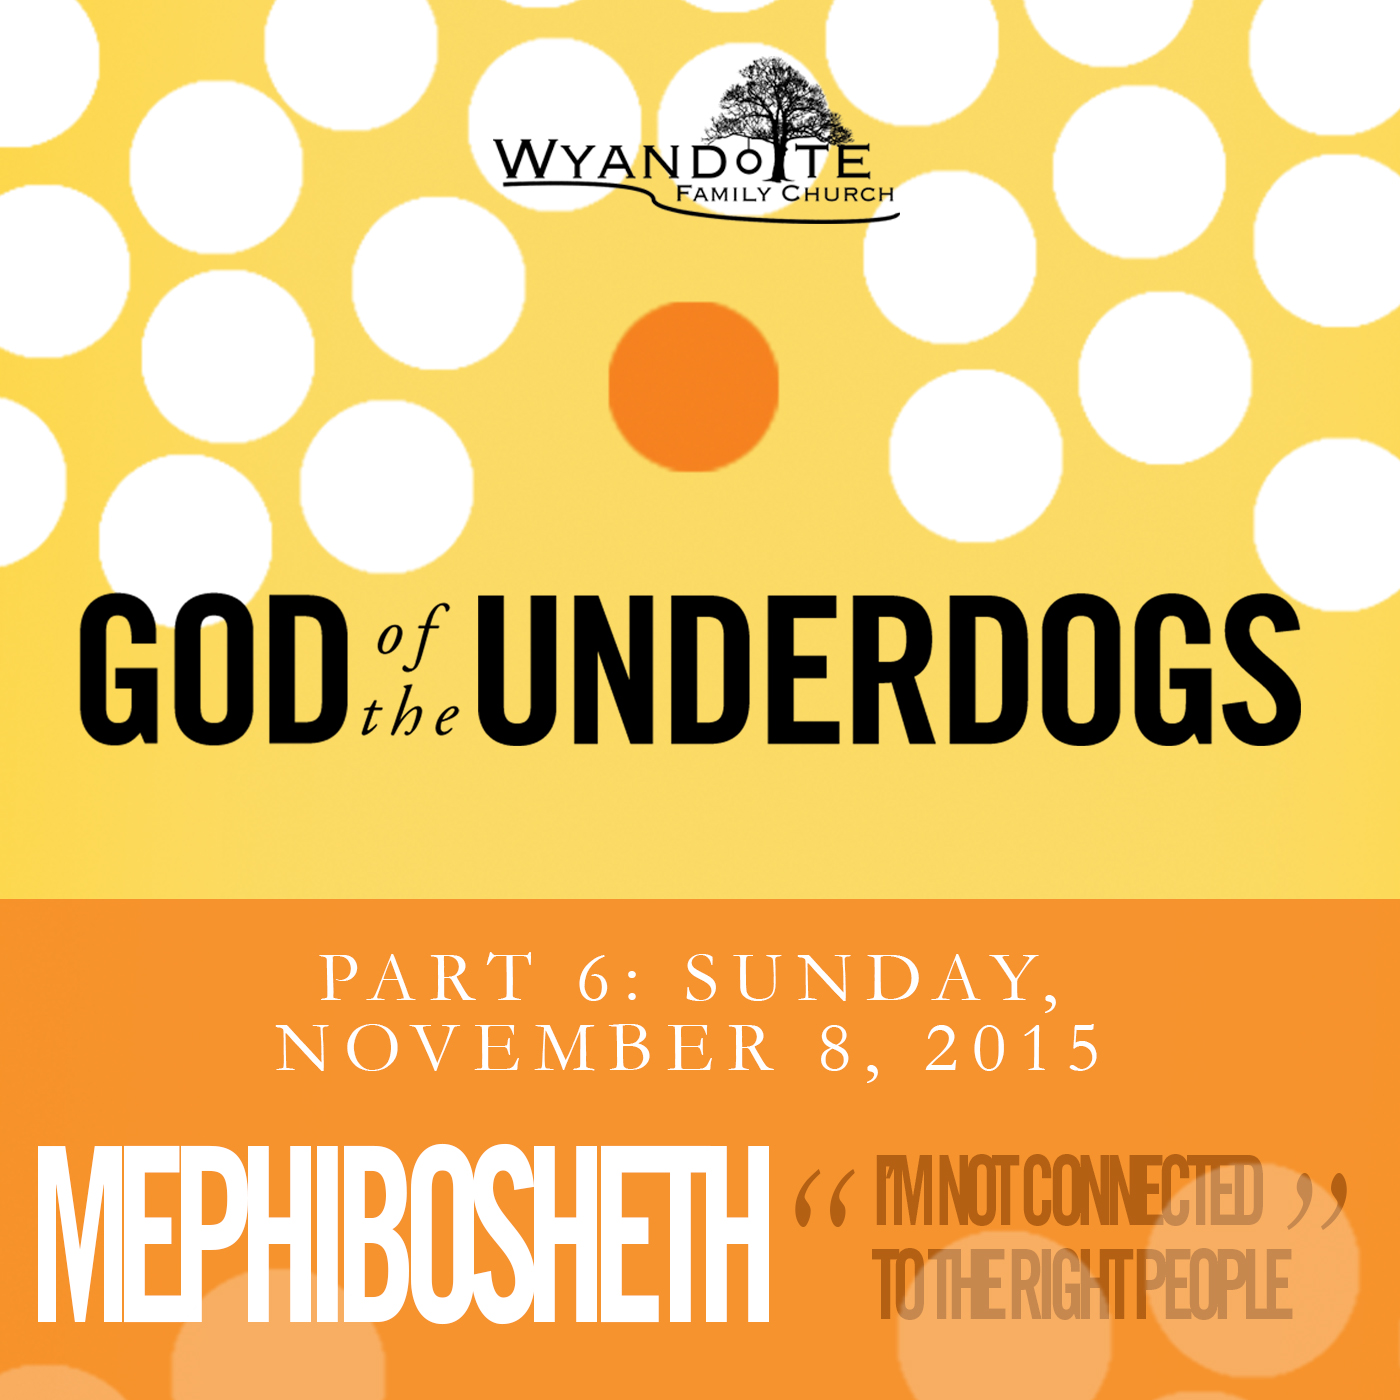 God of the Underdogs Part 6 Mephibosheth (I'm not connected to the right people)